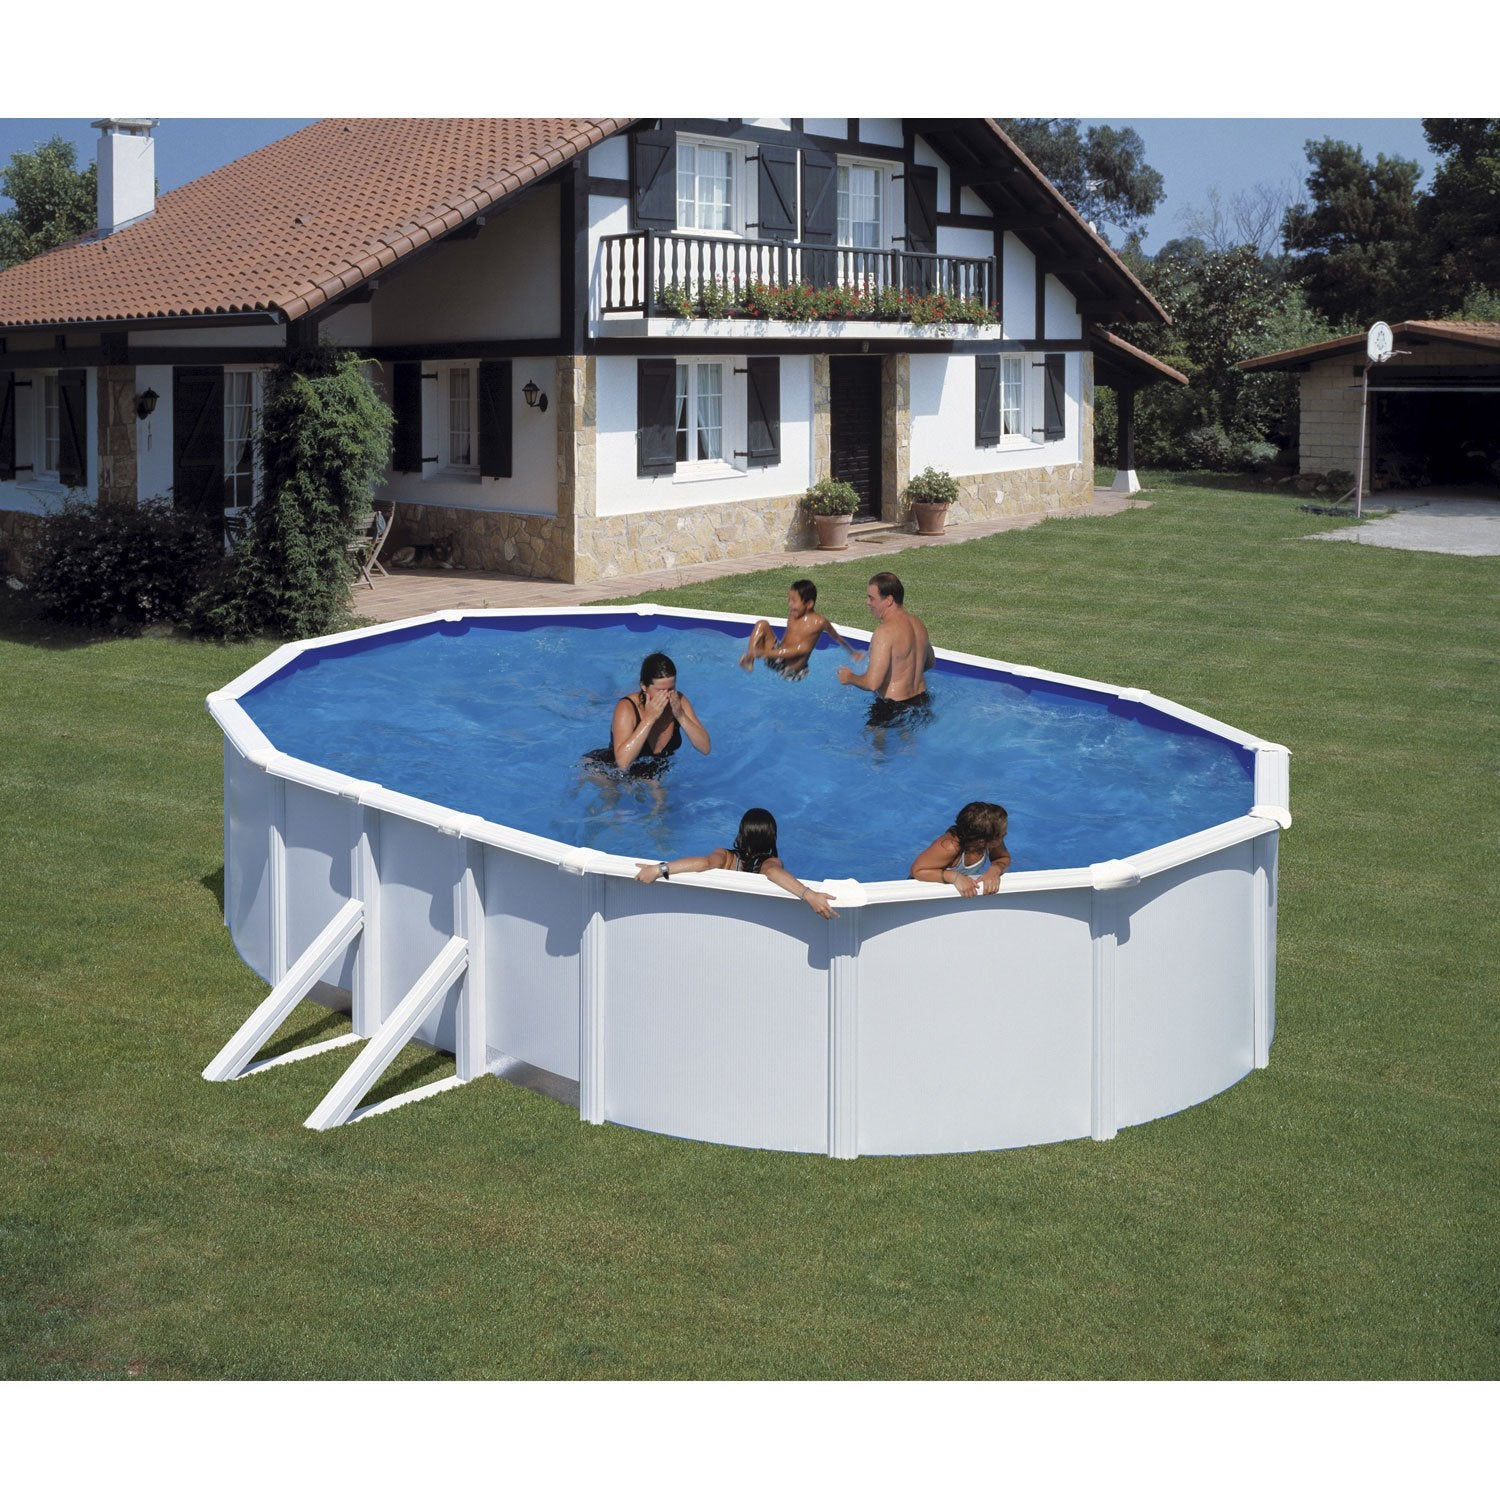 terrasse bois piscine leroy merlin diverses. Black Bedroom Furniture Sets. Home Design Ideas